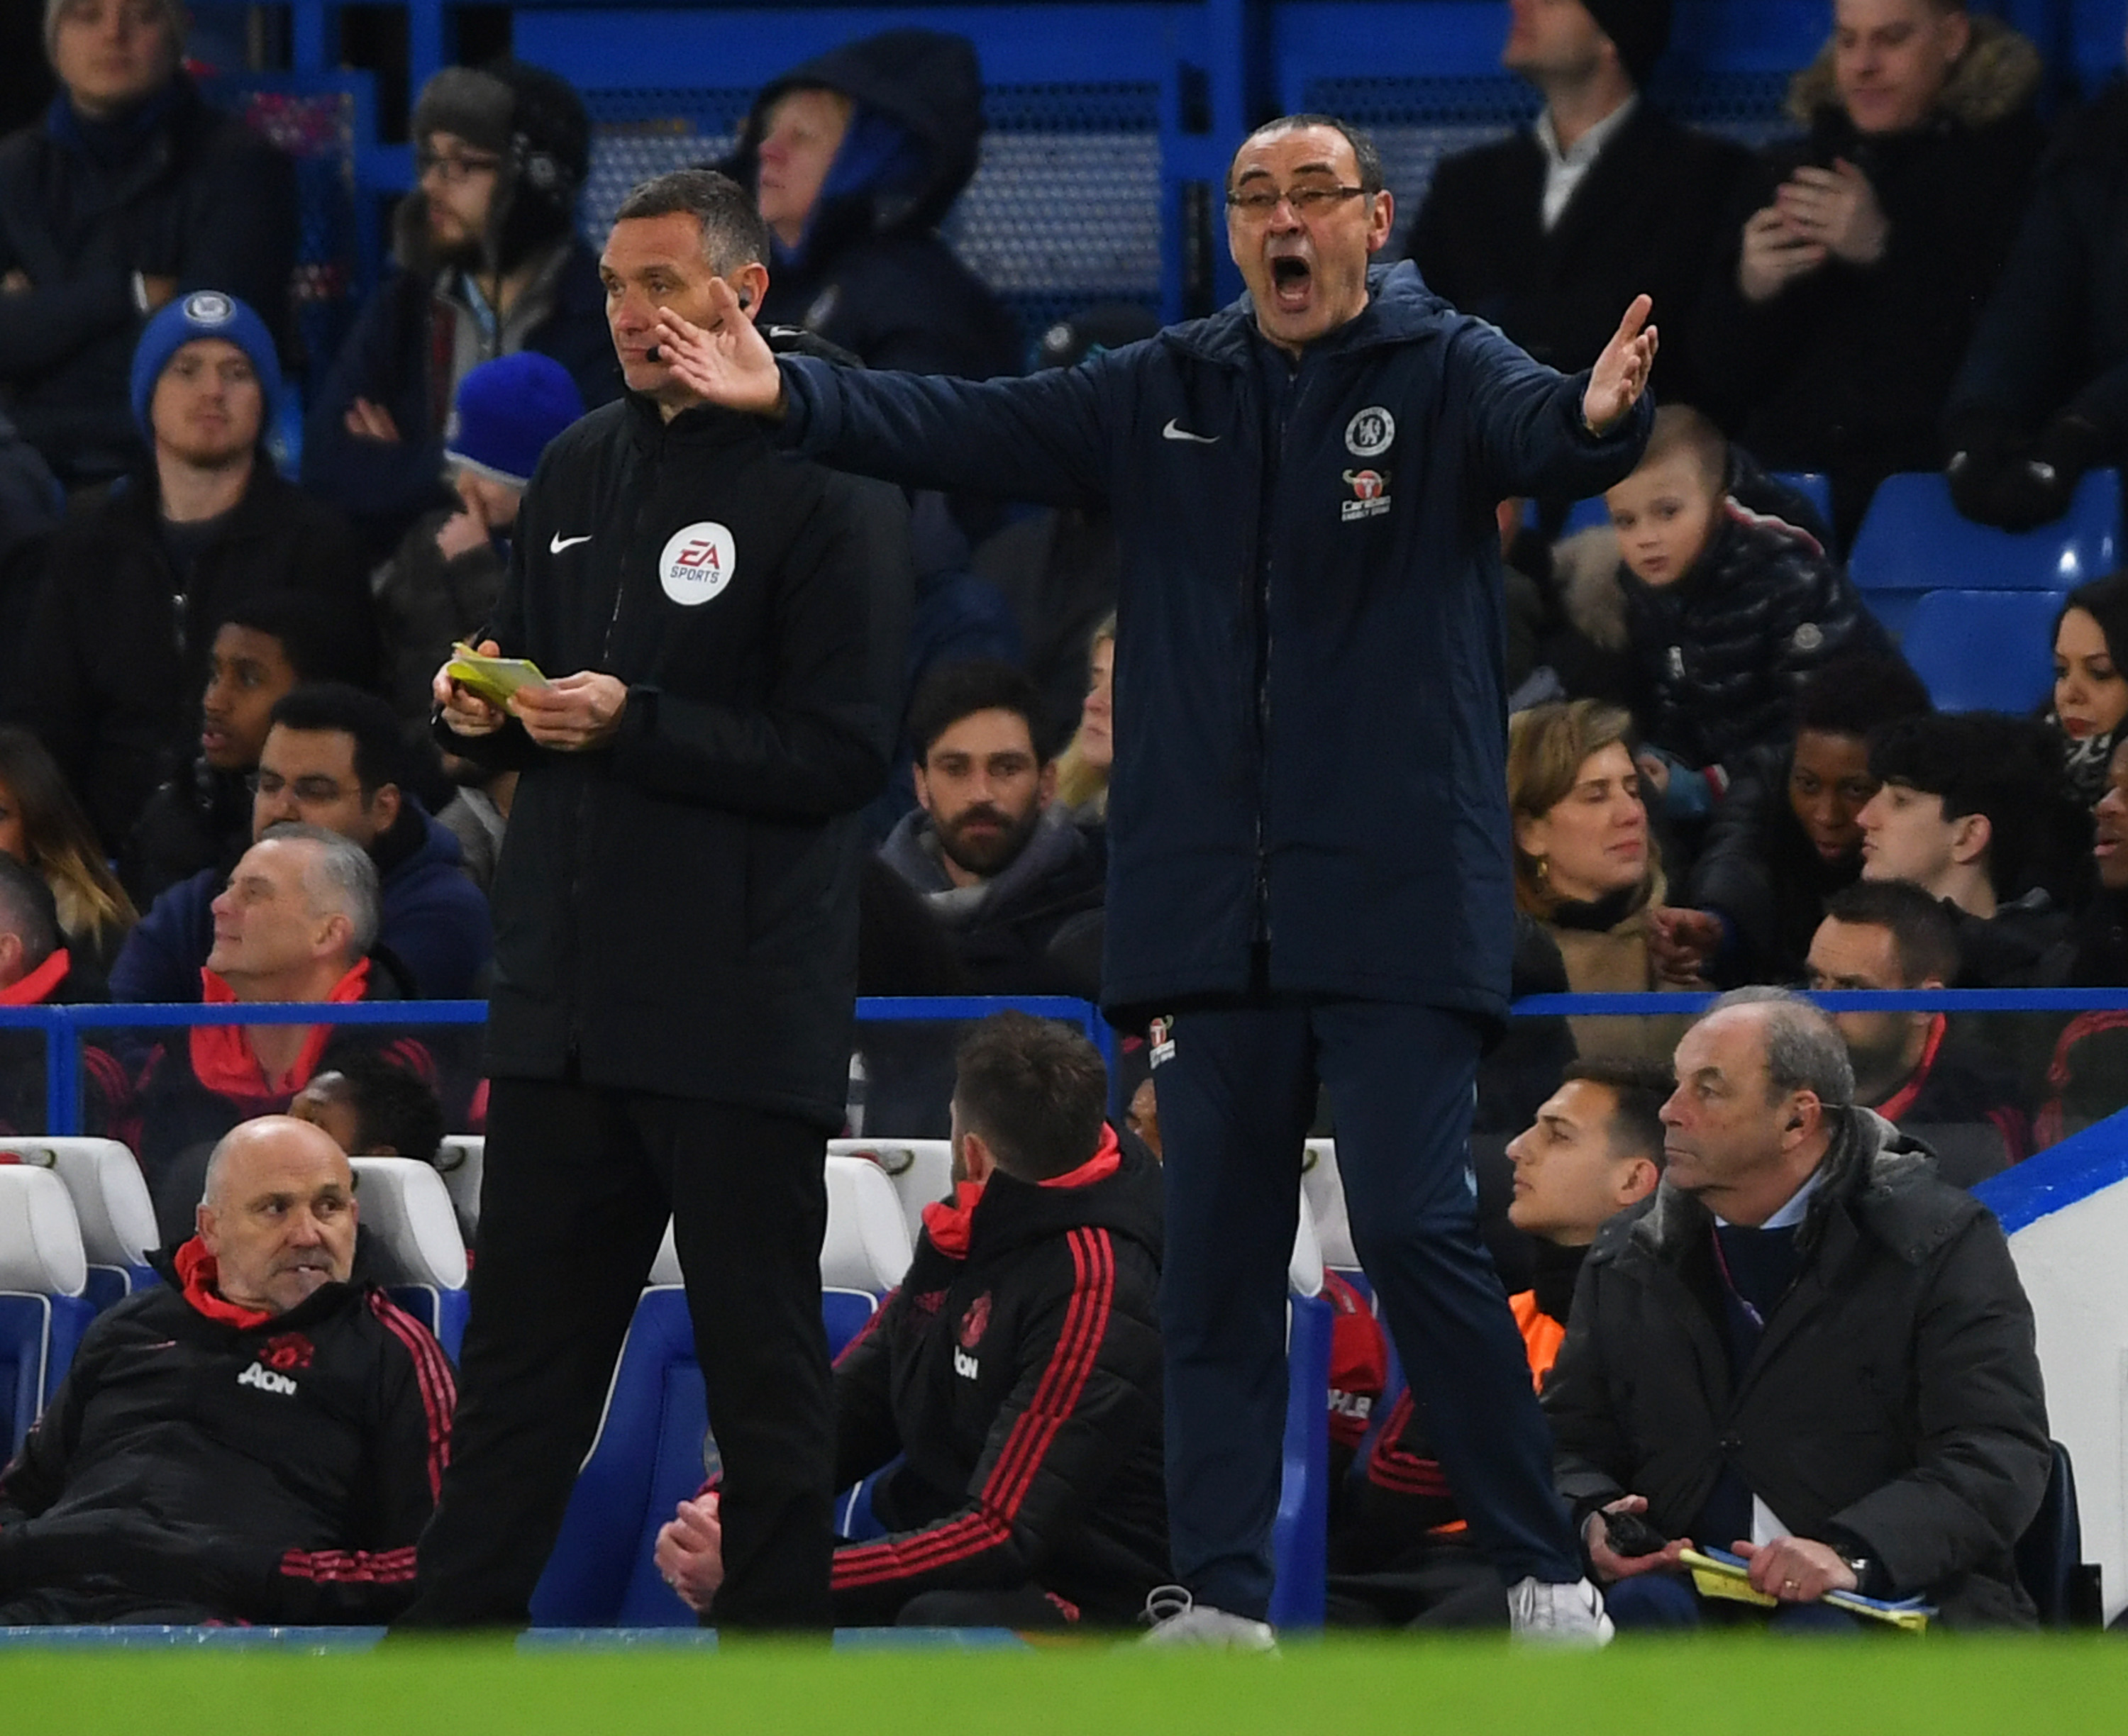 Sarri still clueless about what's going wrong at Chelsea